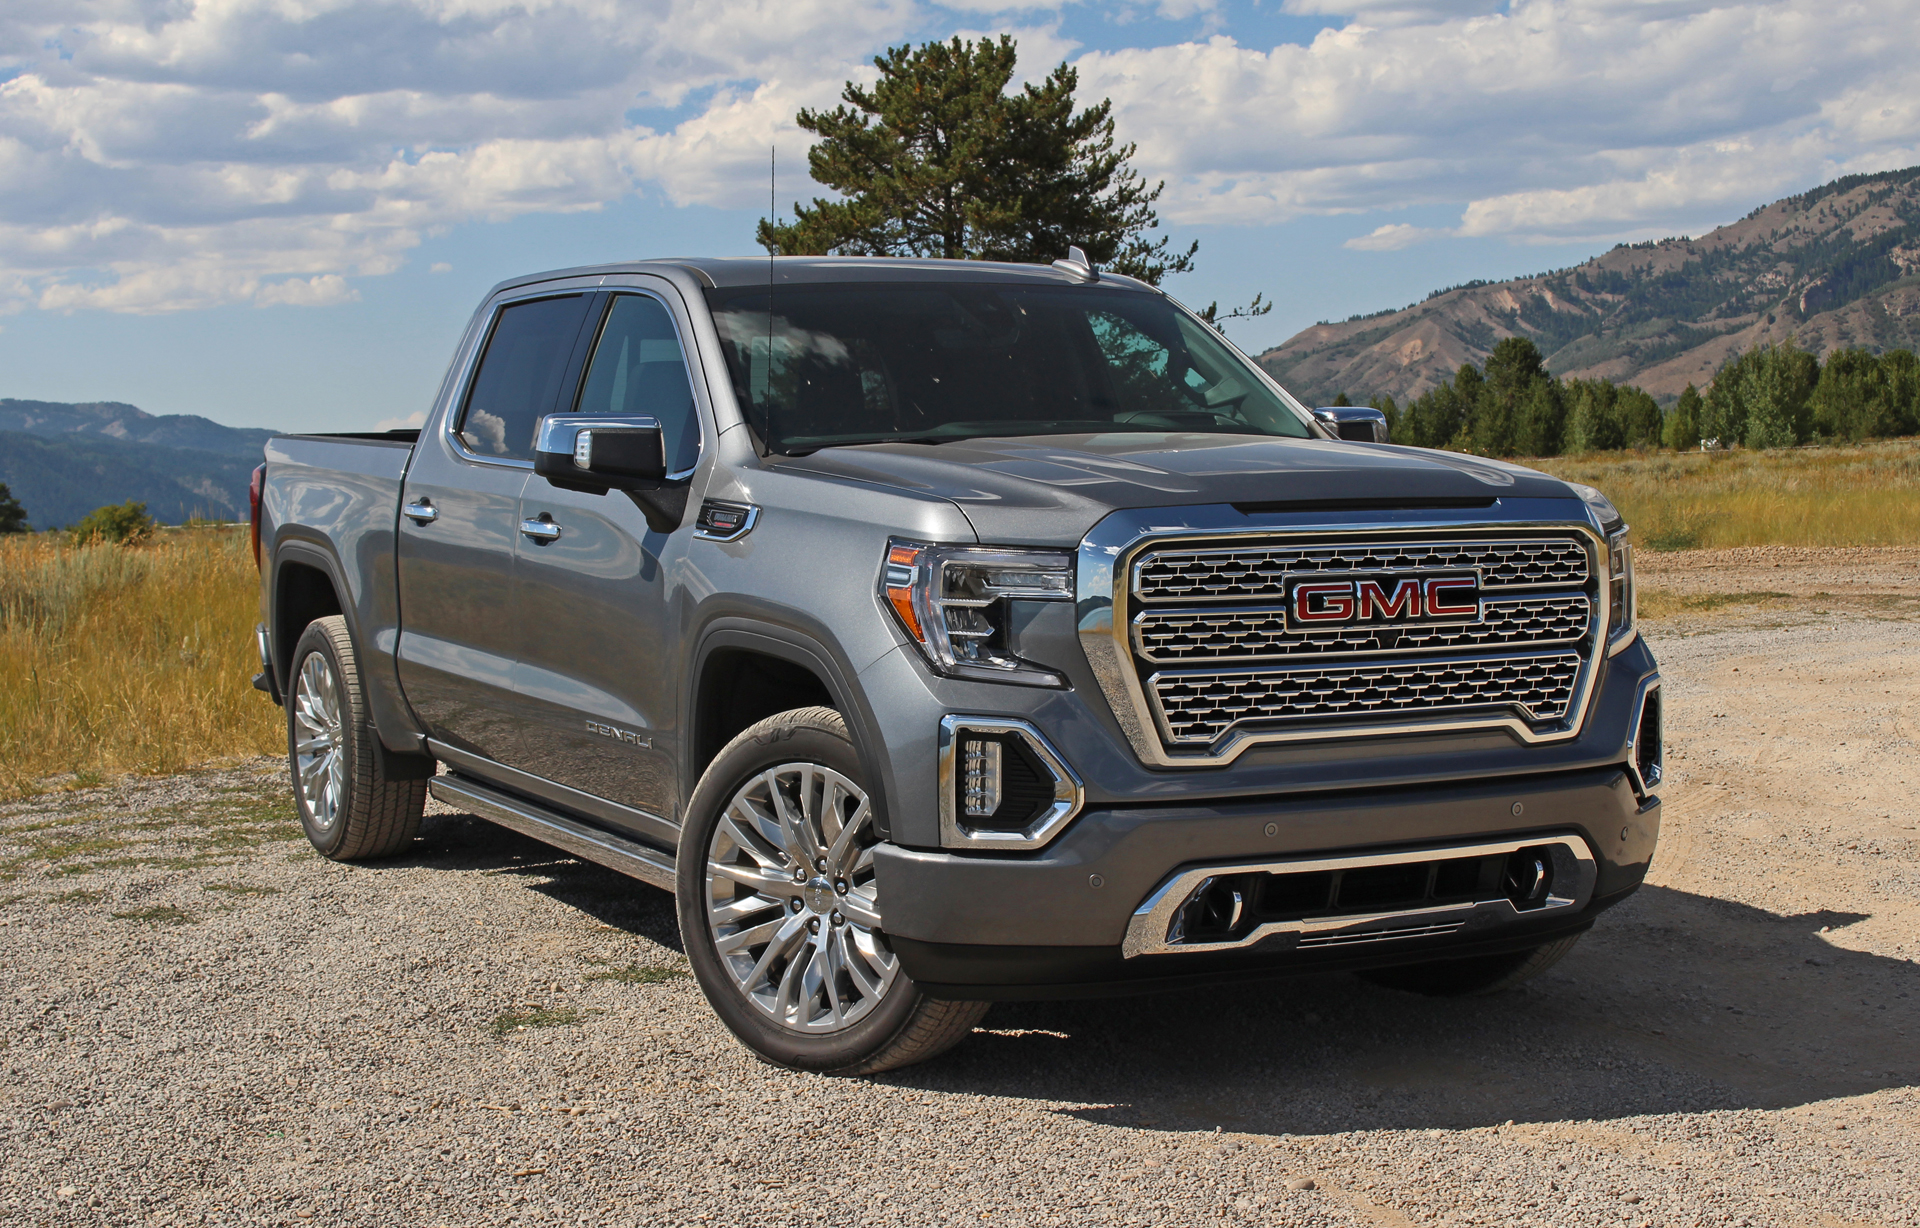 The 2020 Gmc Sierra 1500 Duramax Diesel Pickup Is A V 8 Alternative